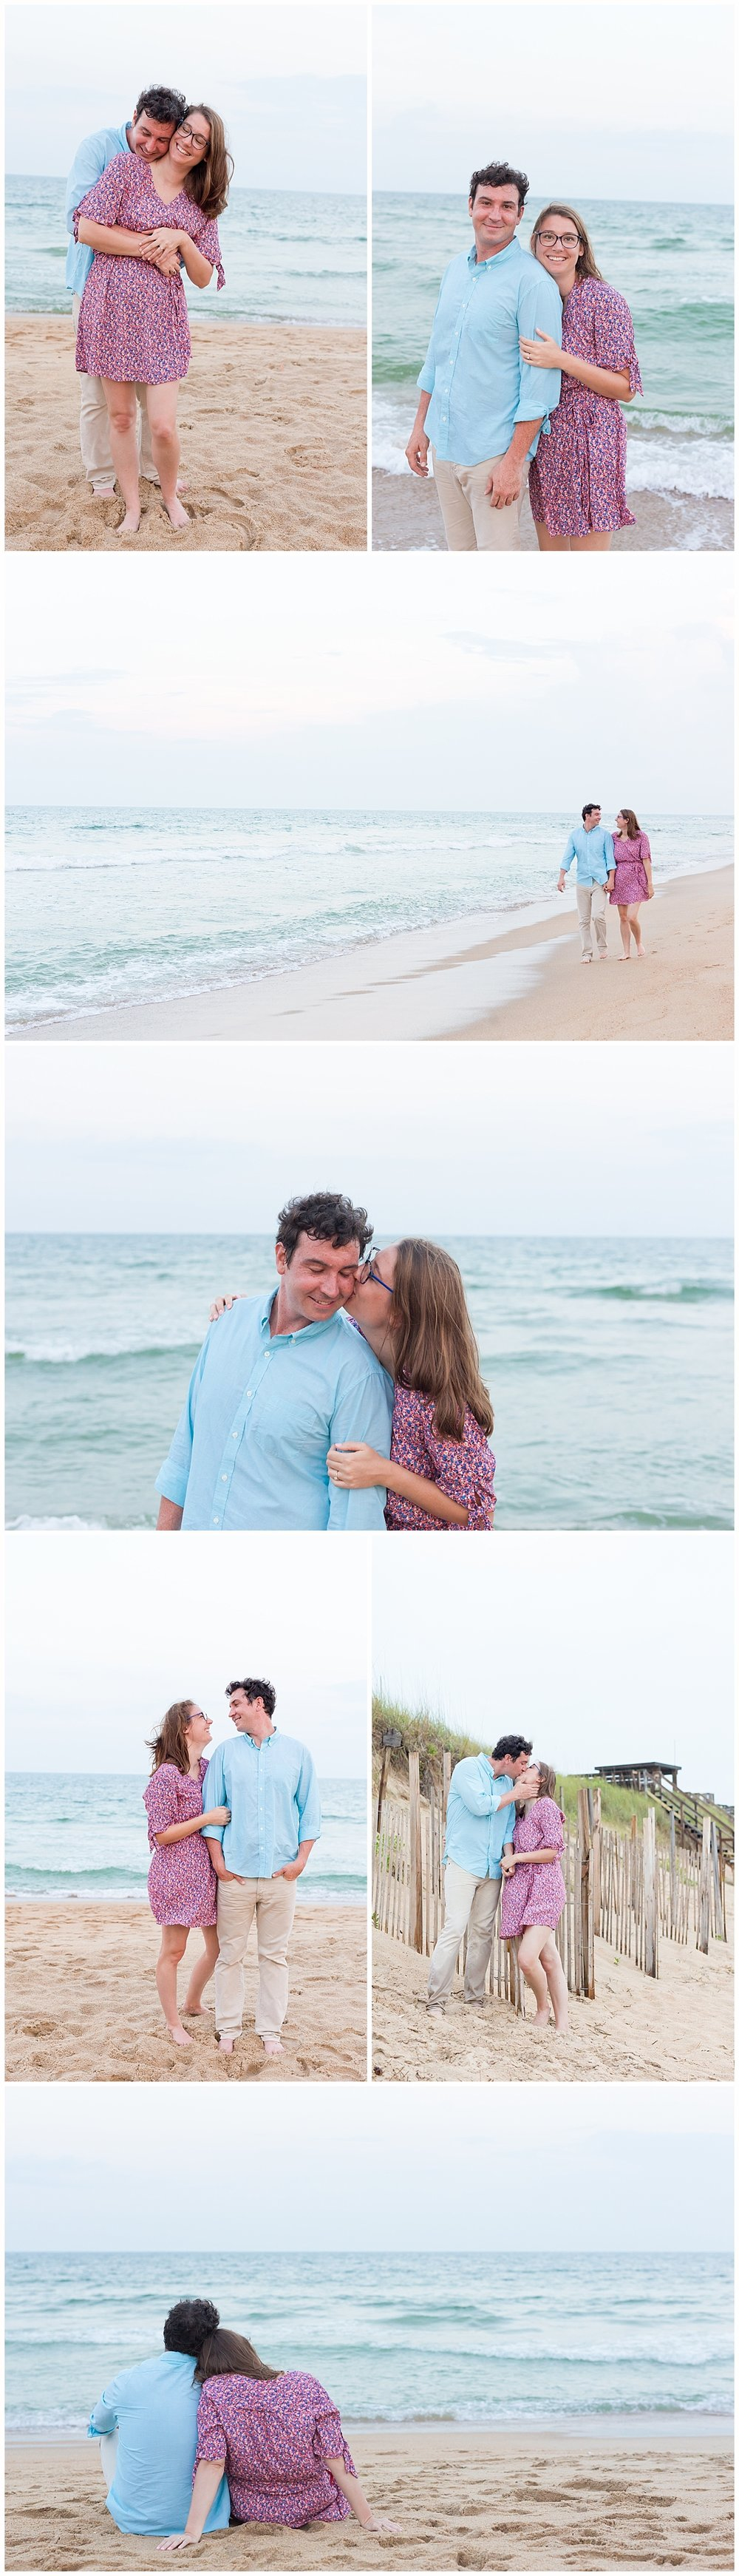 beach engagement pictures - coastal engagement photography - Ocean Springs, MS wedding photographer